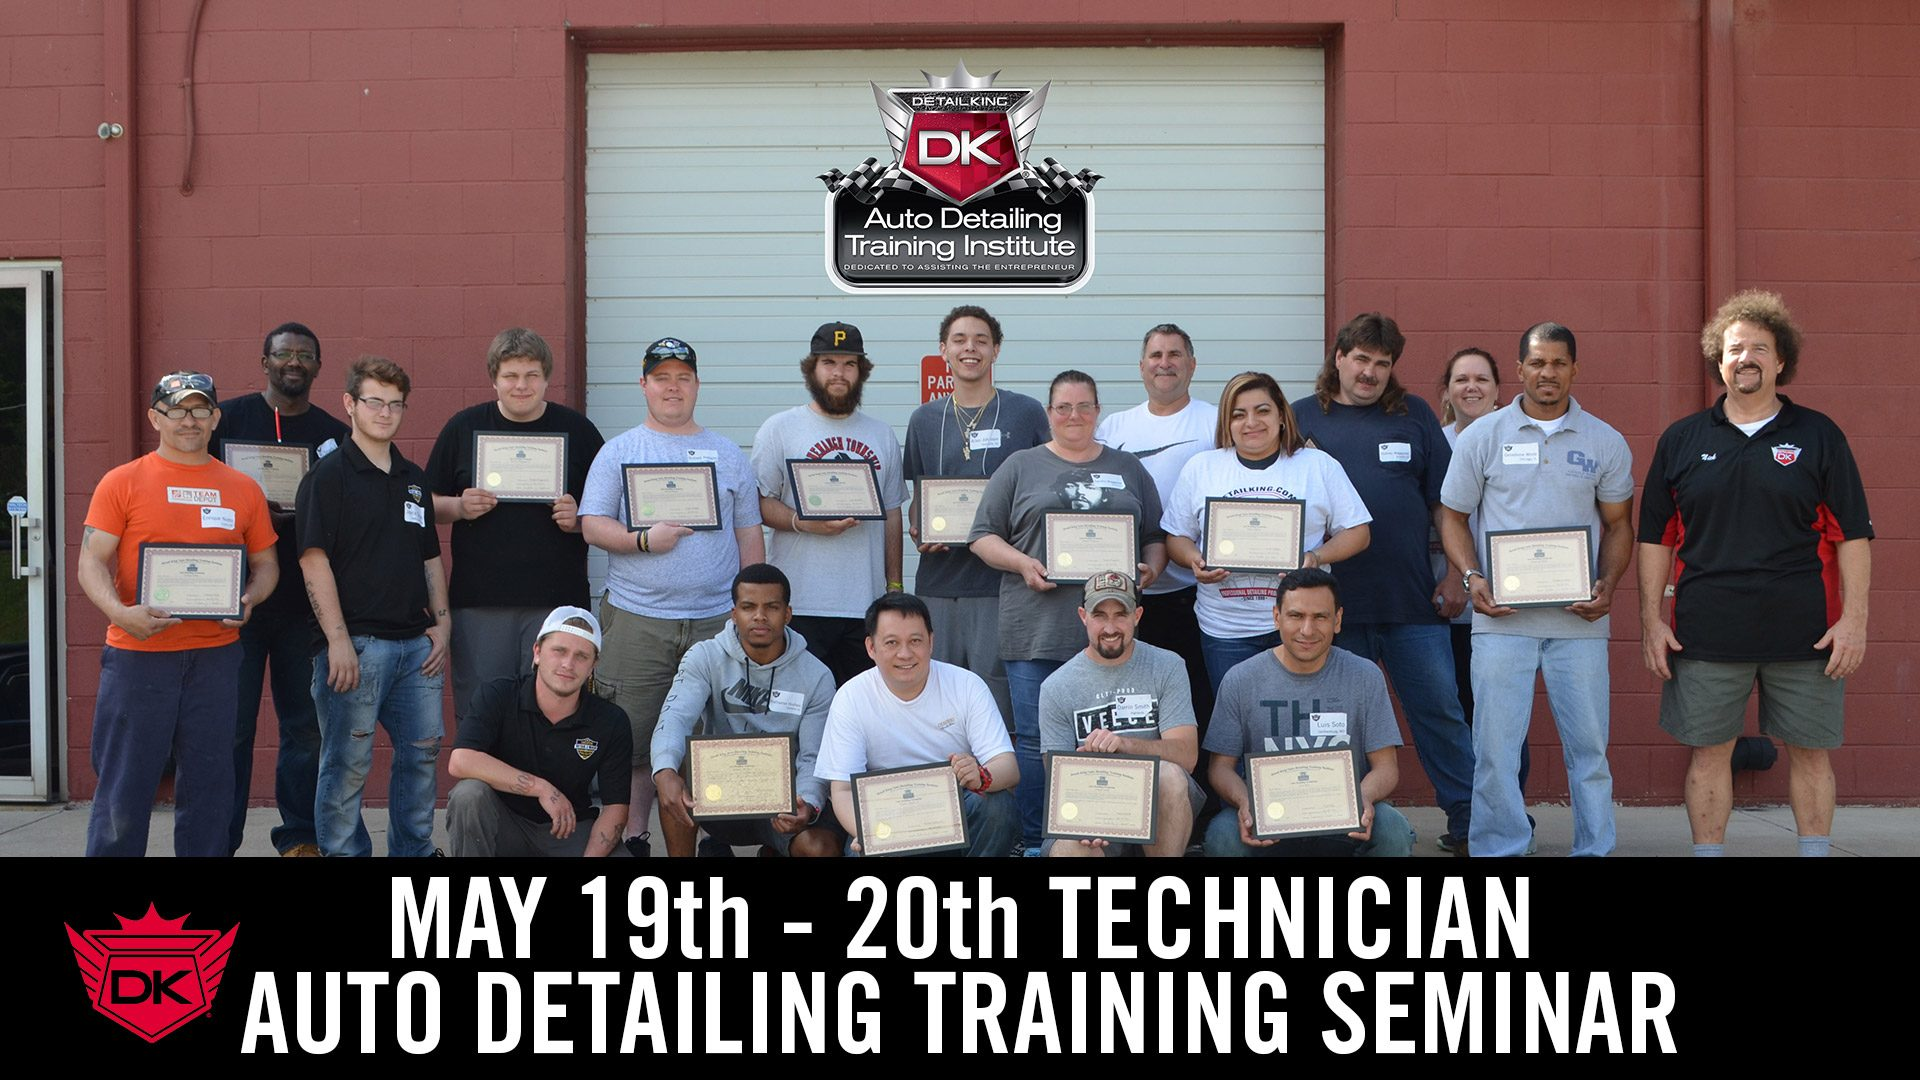 May 19th – 20th Technician Auto Detailing Training Seminar